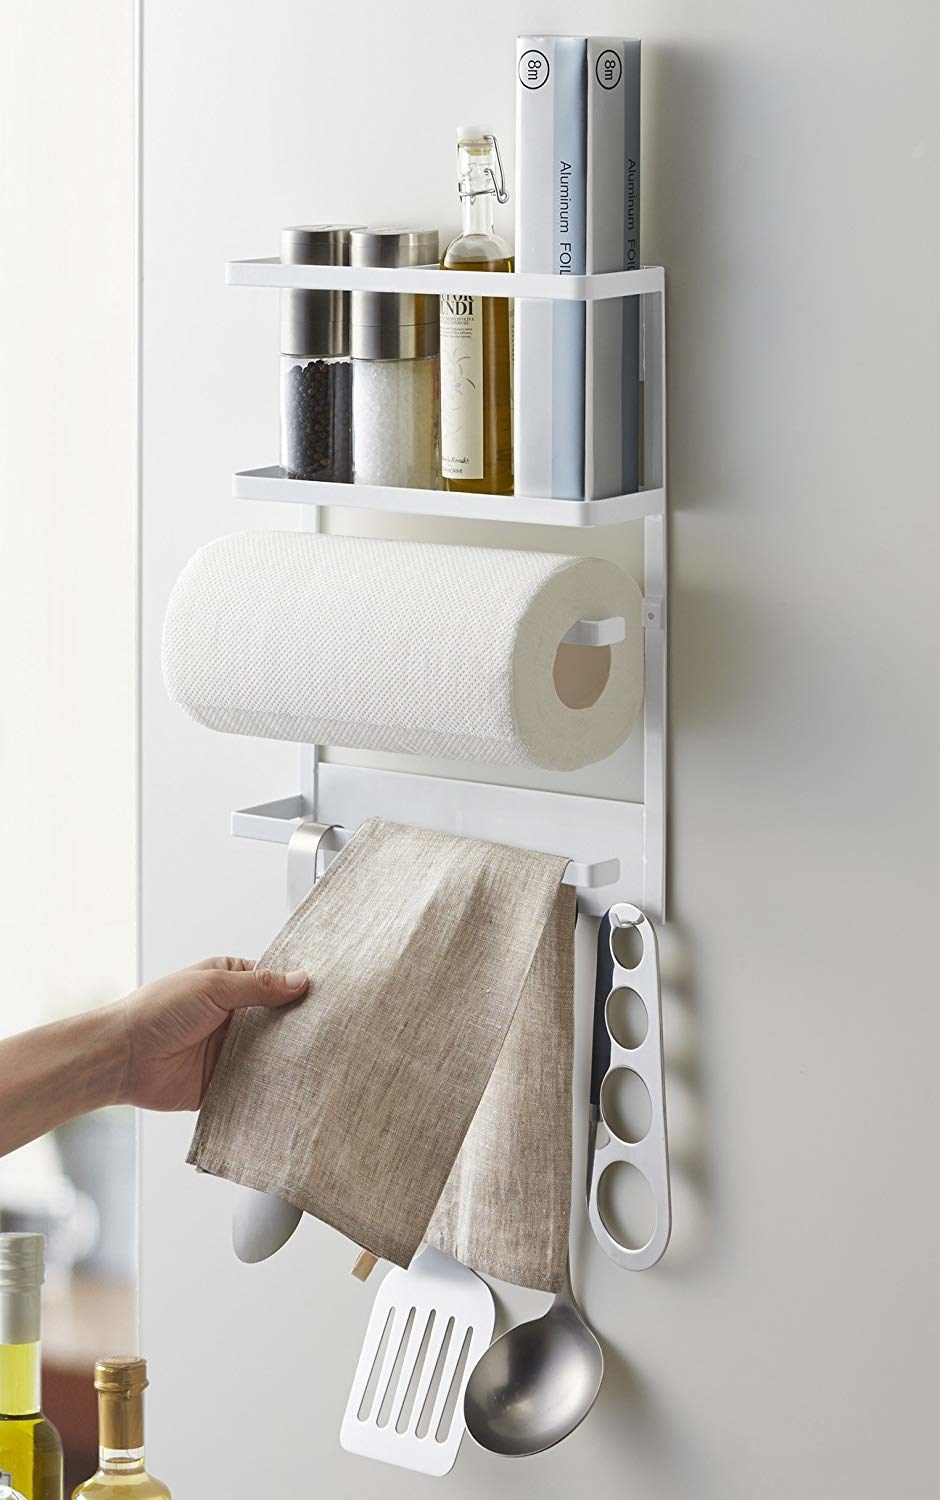 The magnetic rack is mounted on a fridge and loaded with utensils salt and pepper cookbooks and a dish towel